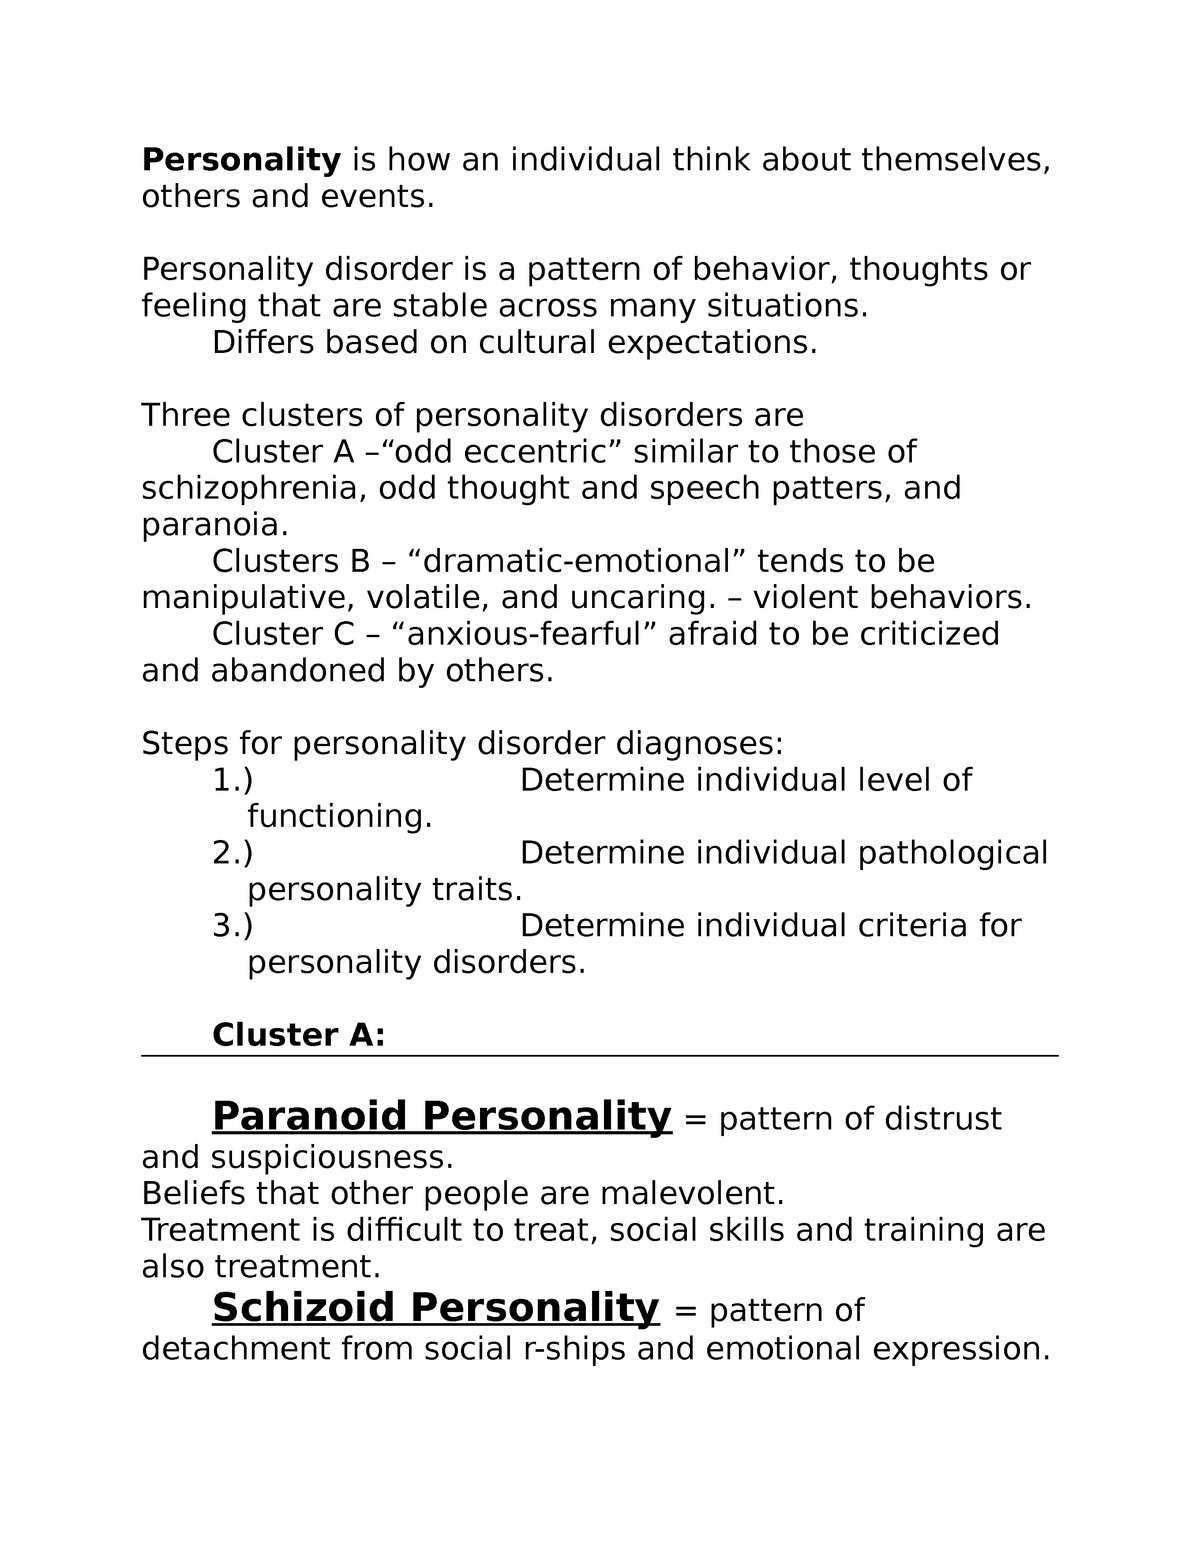 Personality Notes - Lecture notes for Exam #2 - PSYC 3375